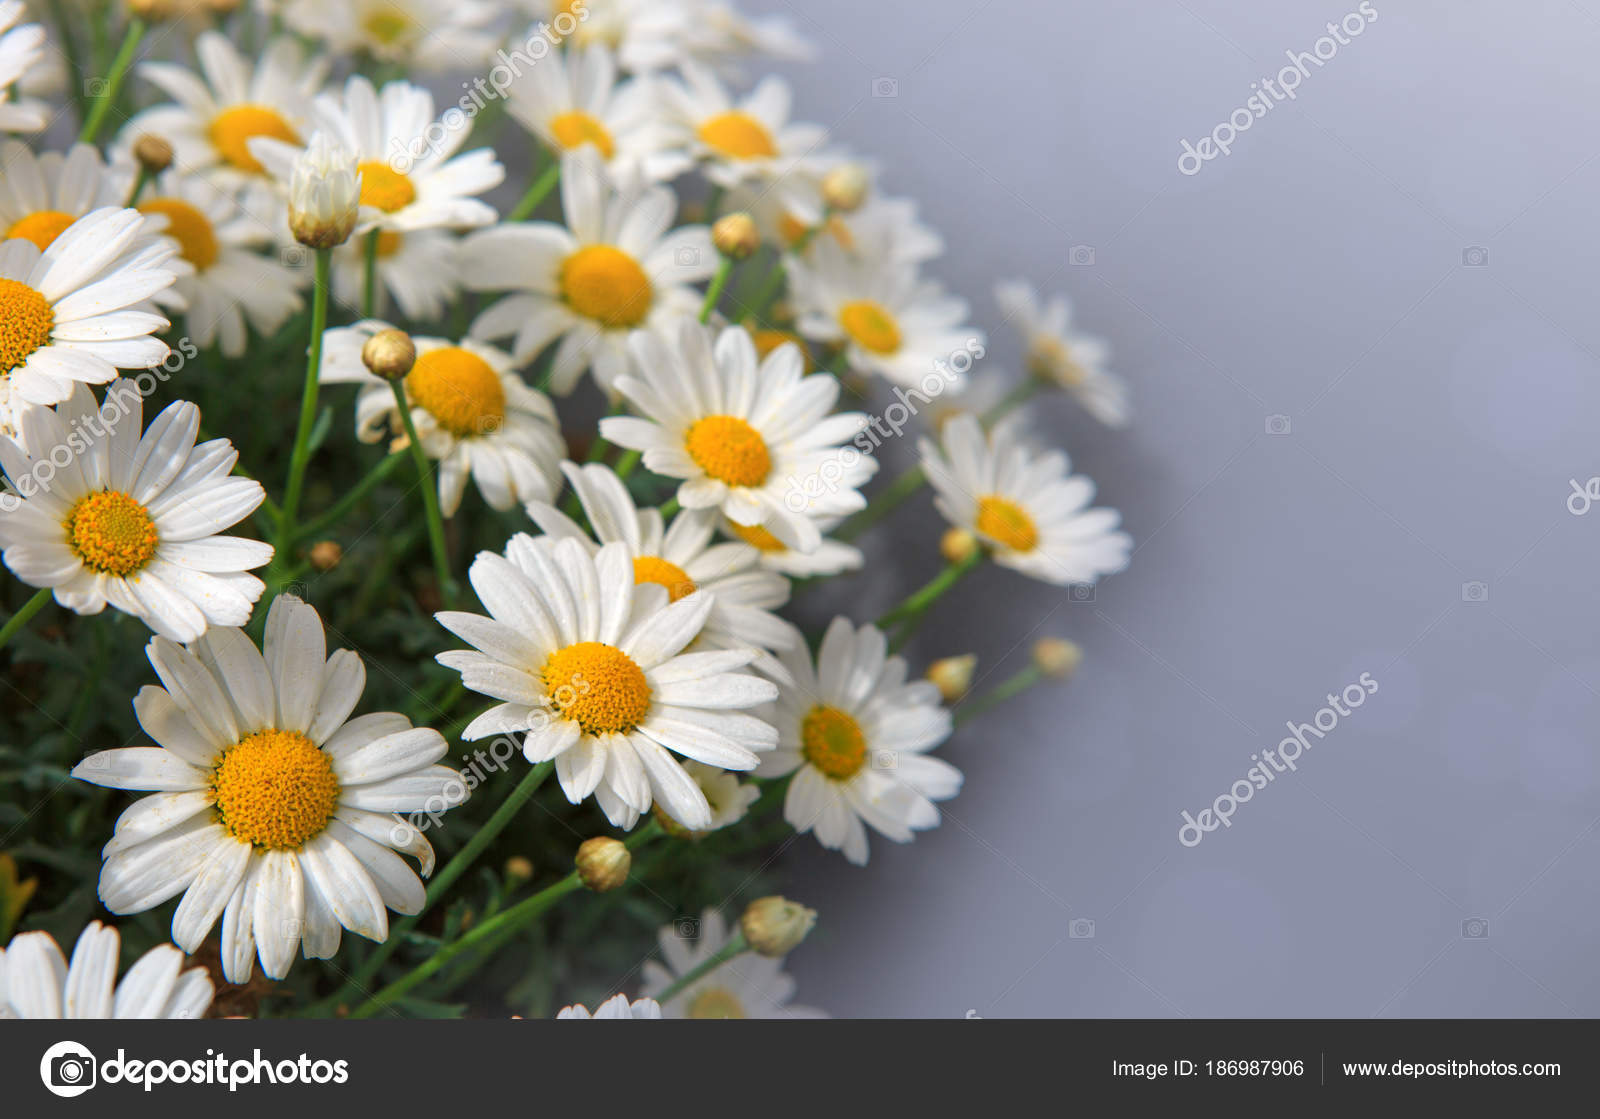 White Daisies Flowers In Bright Sun Light Stock Photo Swkunst